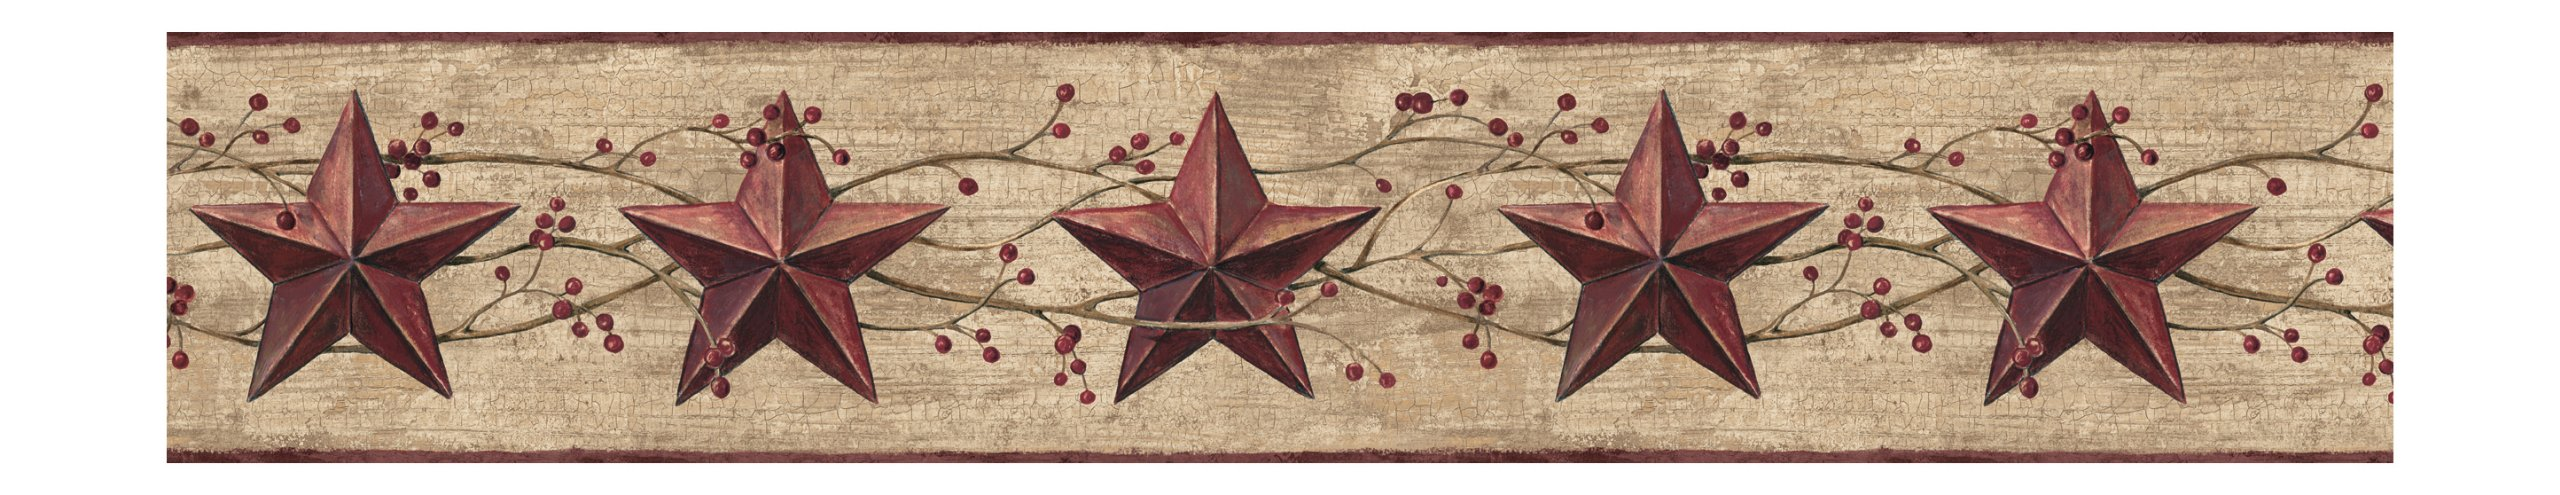 York Wallcoverings Best Of Country JL1094B Star Berry Border, Khaki/Burgundy by York Wallcoverings